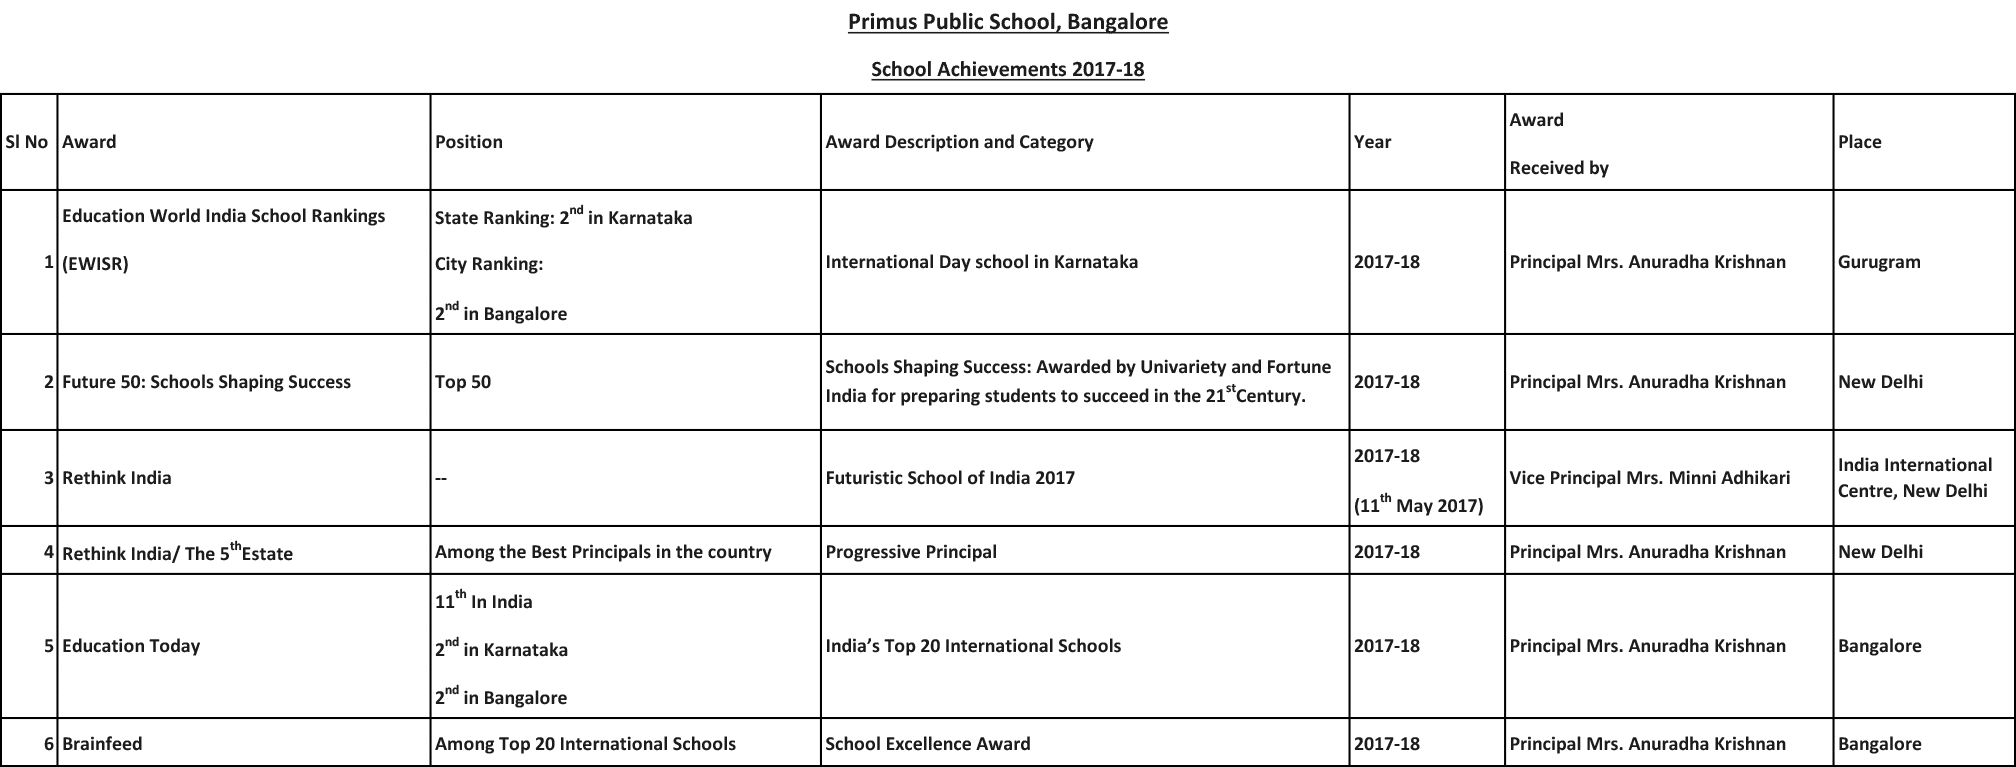 Primus School Achievements 2017-18